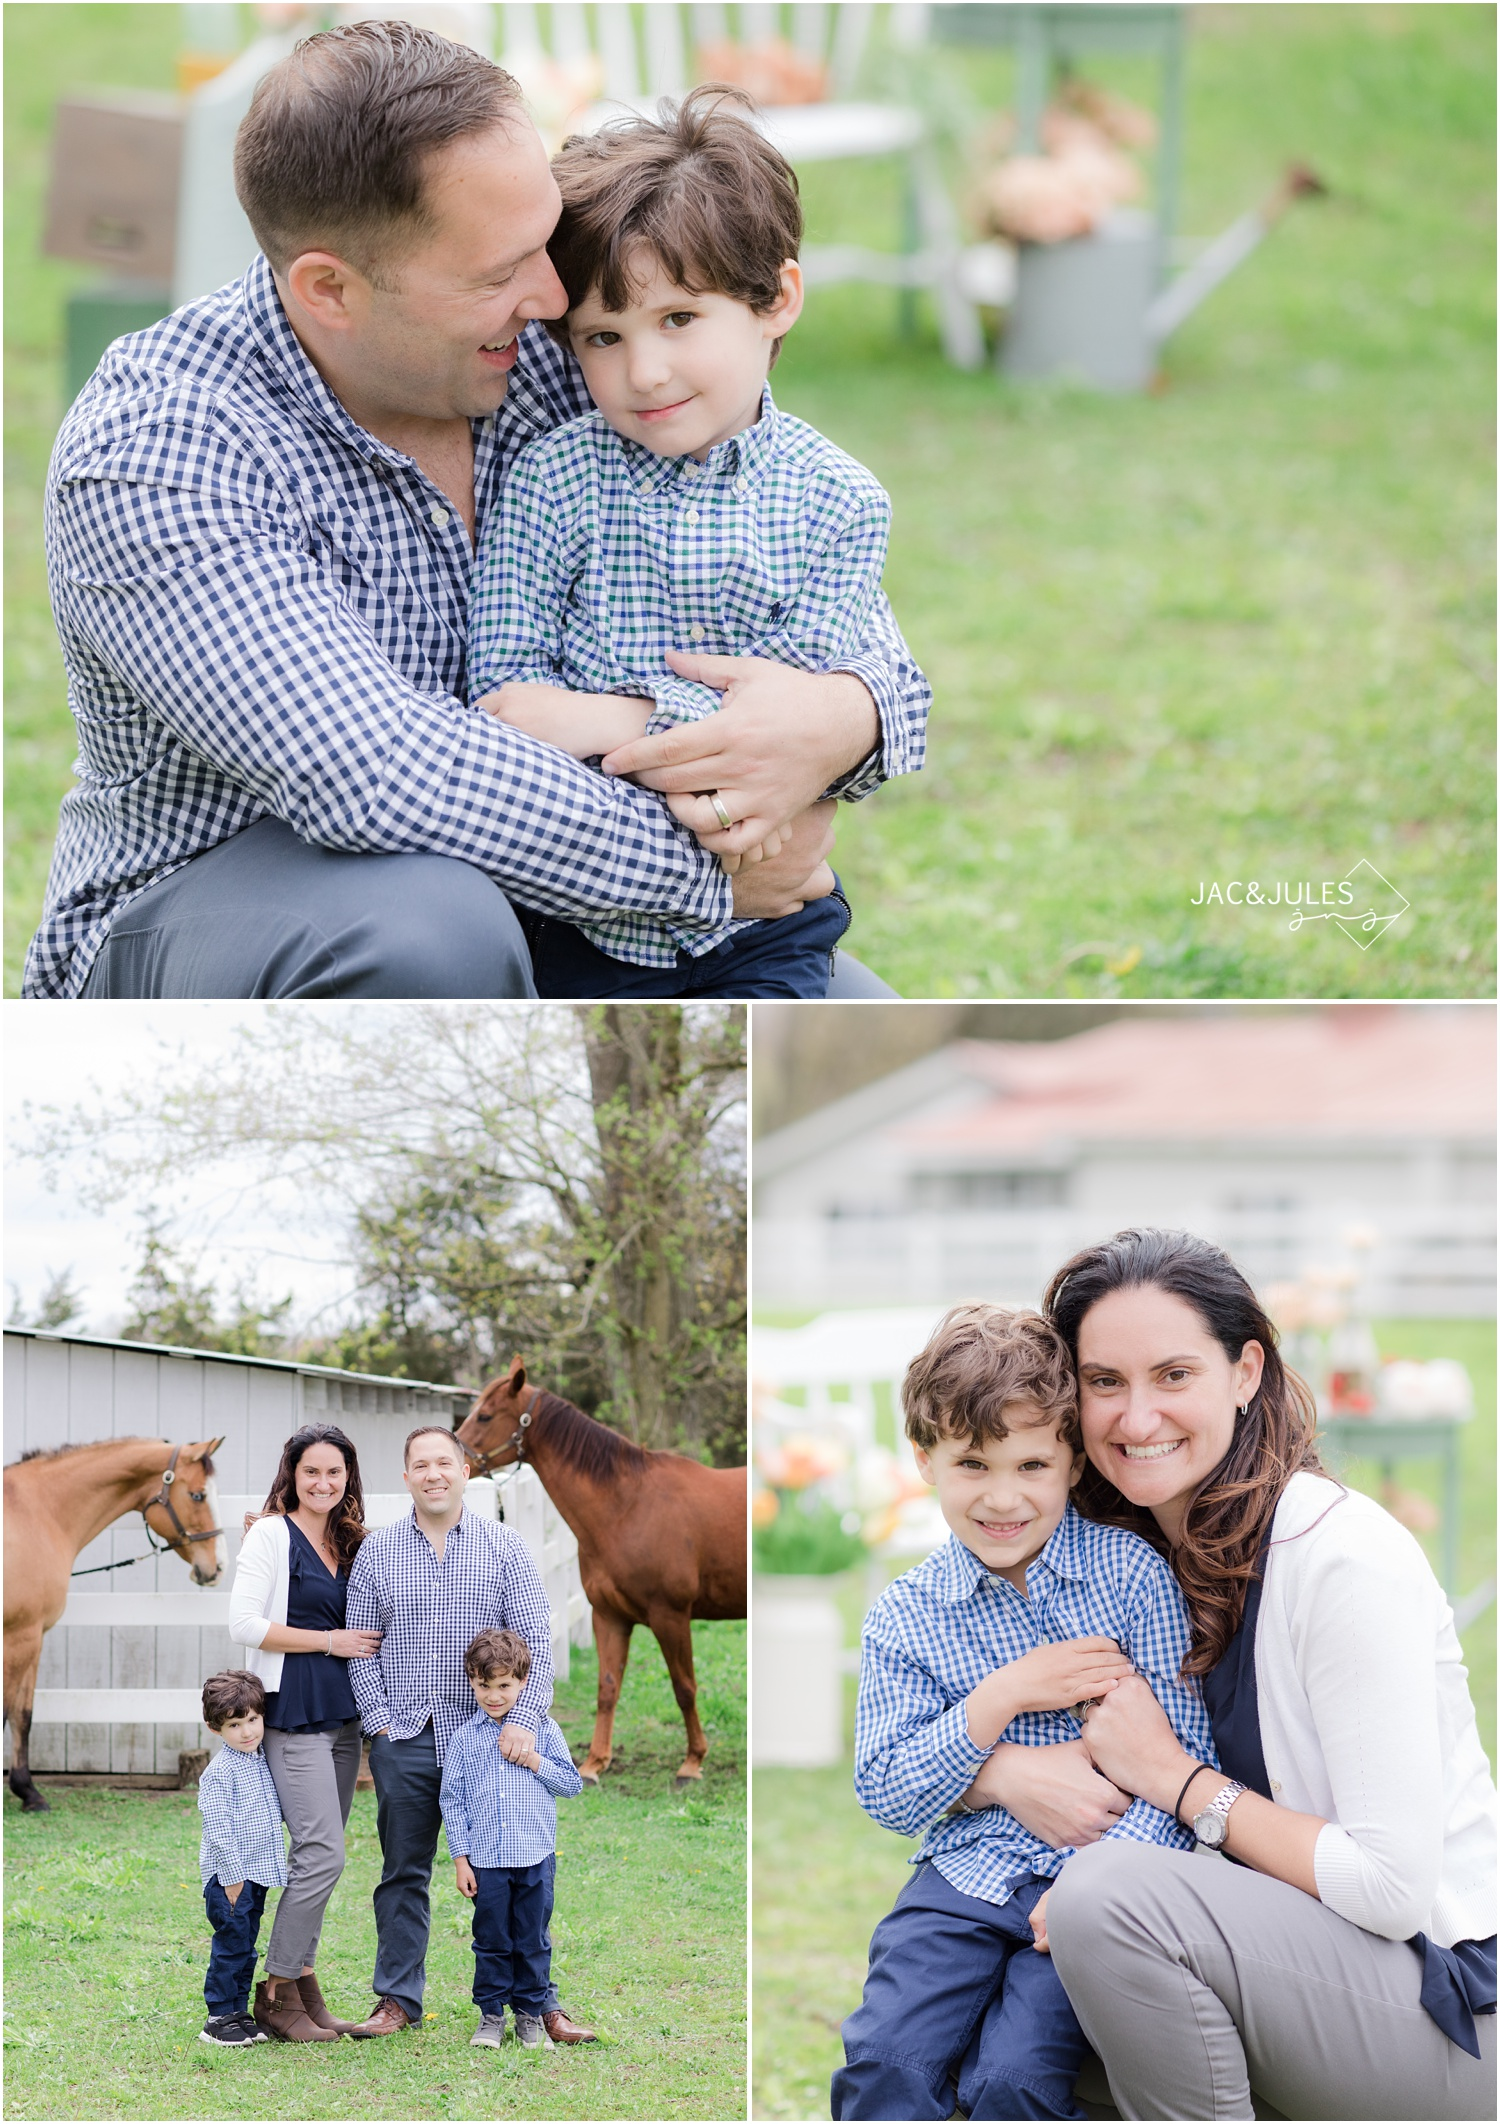 styled family sessions with horses in cream ridge, nj.